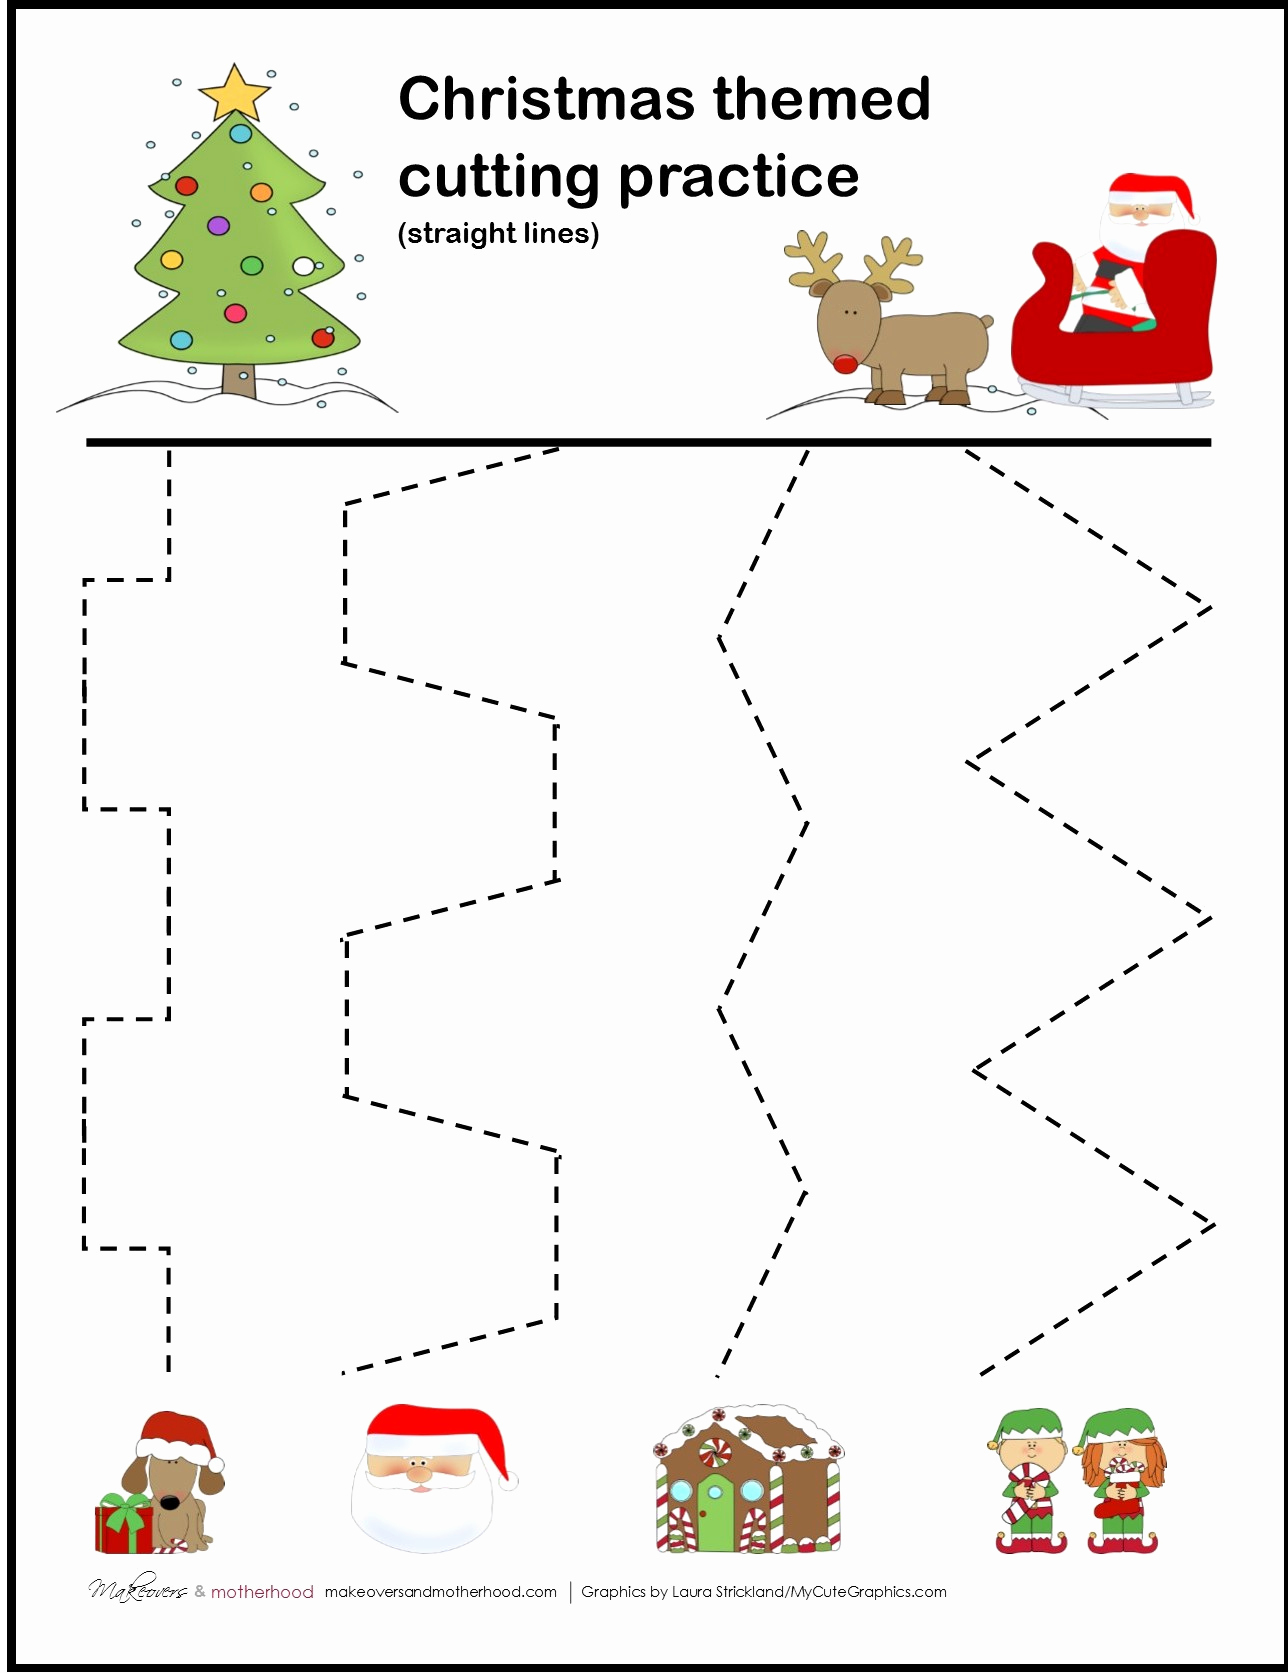 Free Printable Cutting Worksheets Unique Christmas Cutting Practice Sheets Makeovers and Motherhood